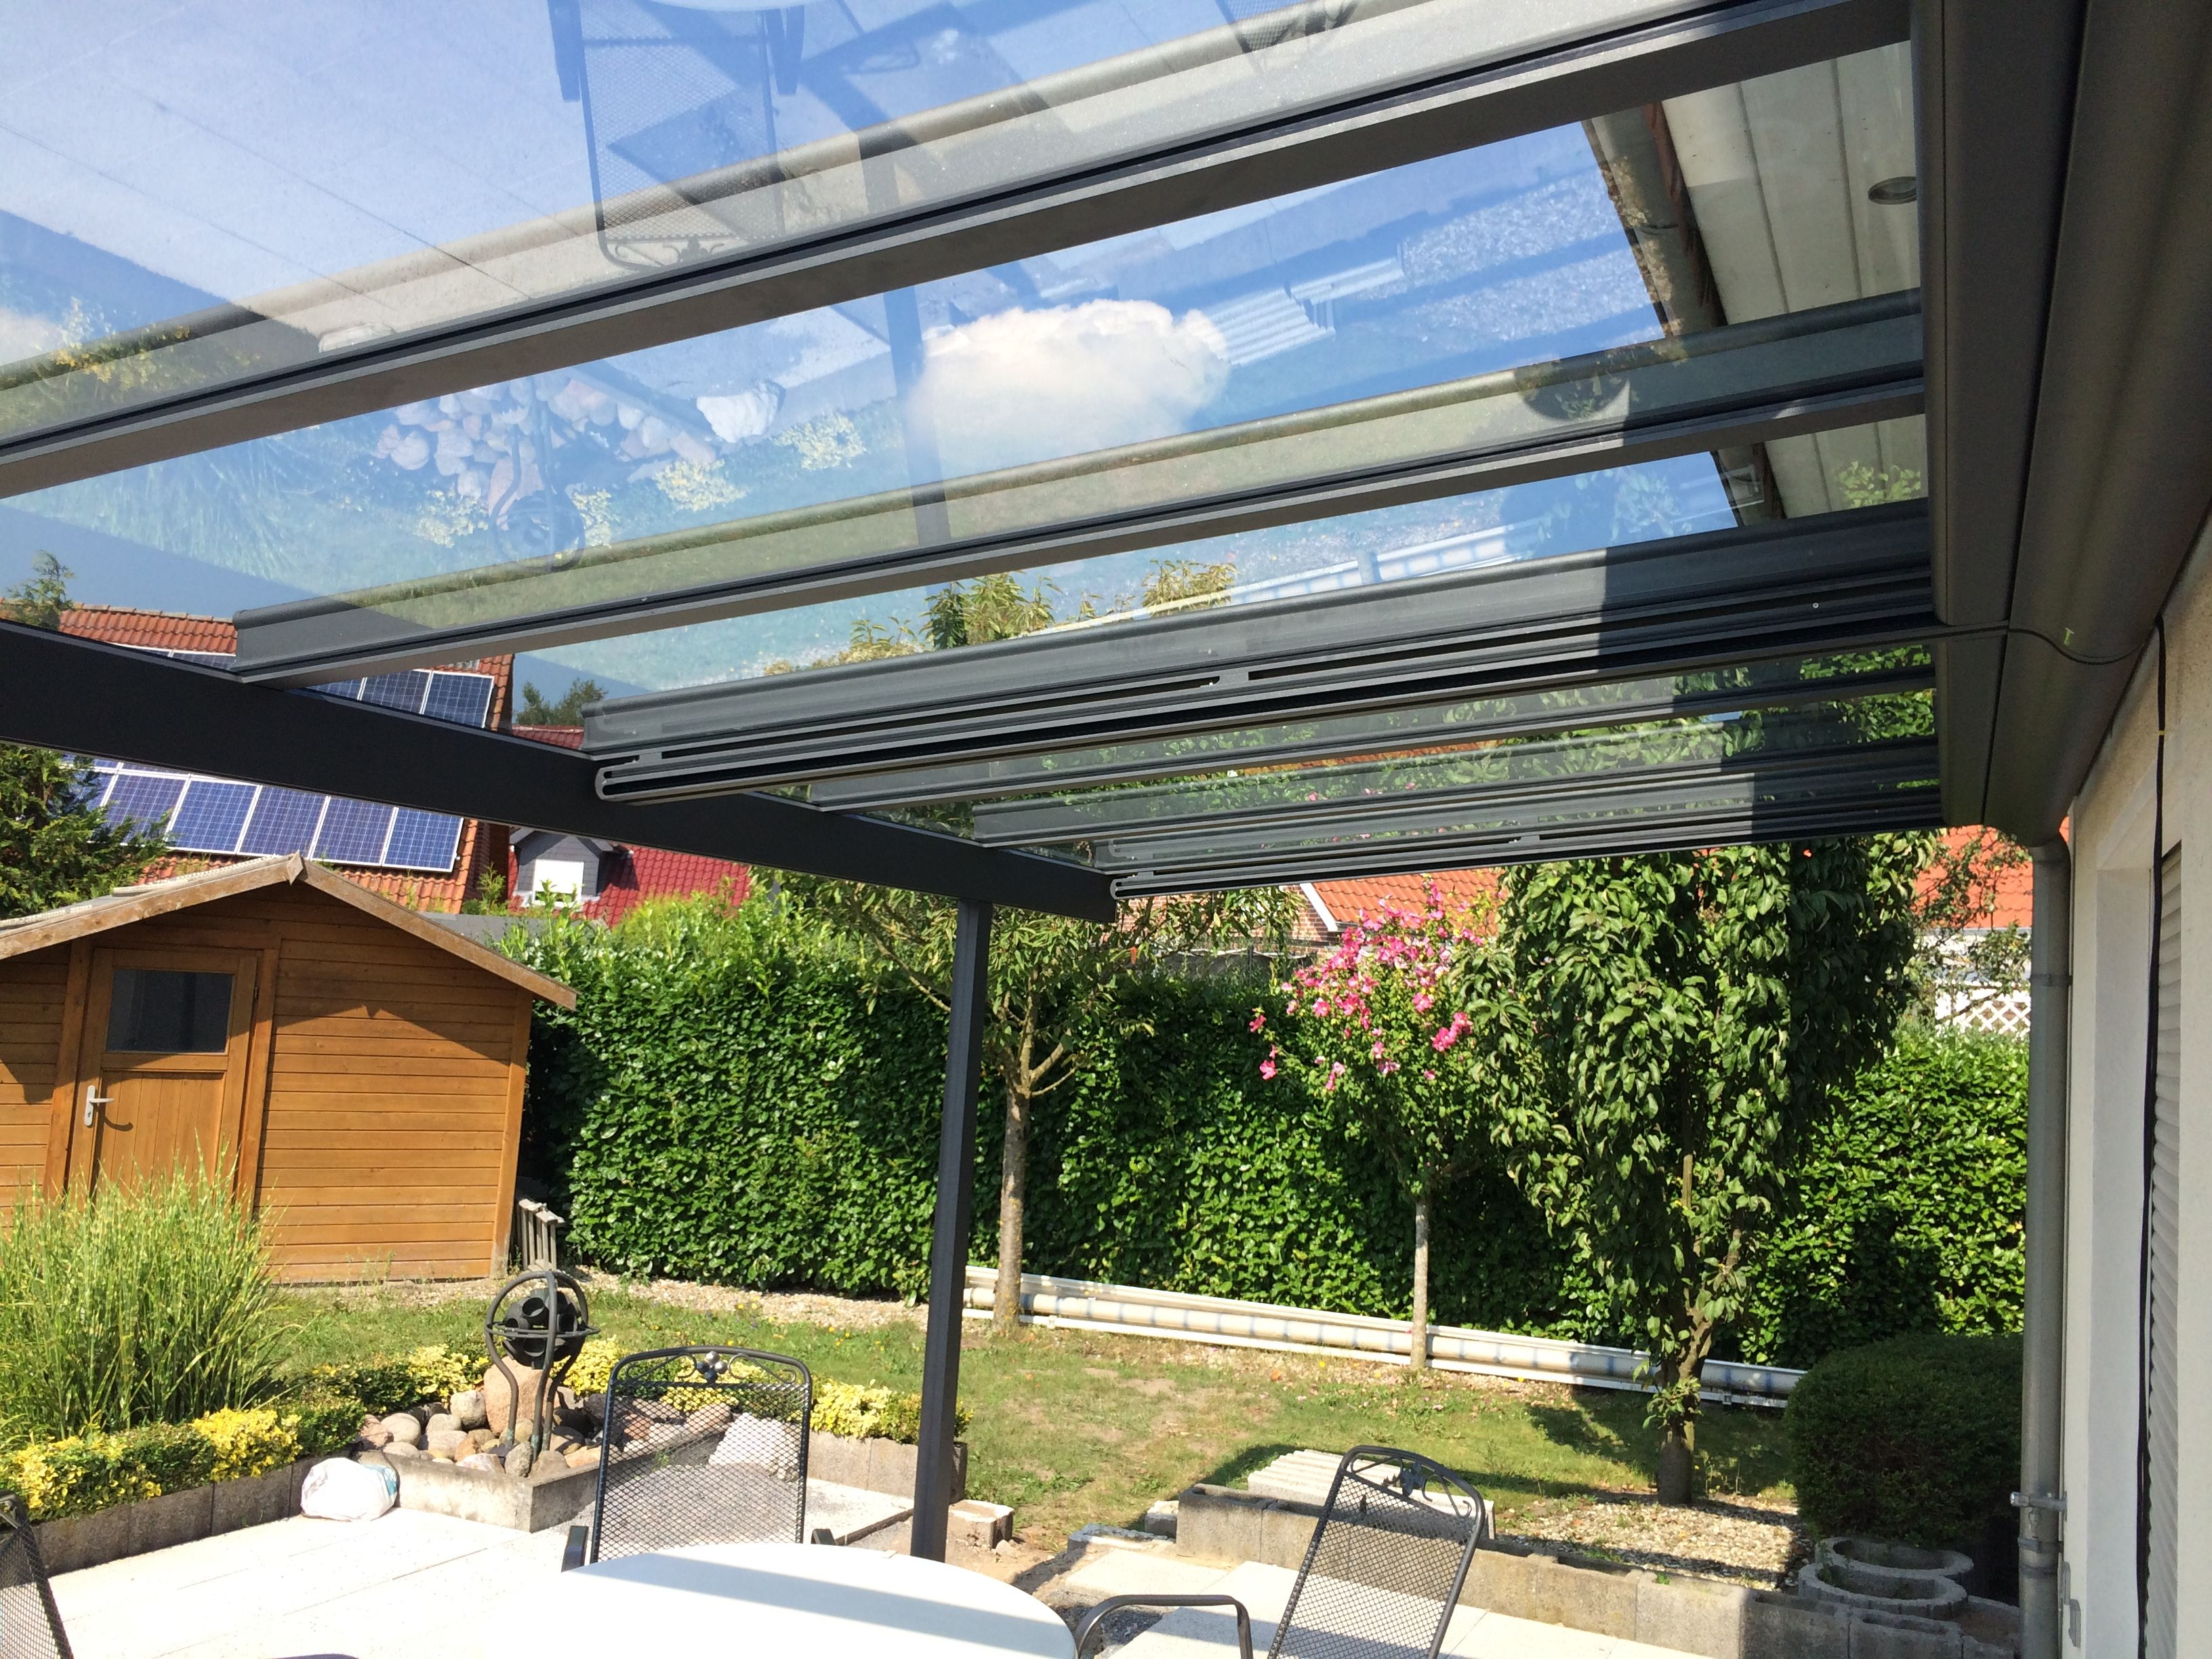 Moderne Markisen Markise Terrasse Beautiful With Markise Terrasse Awesome